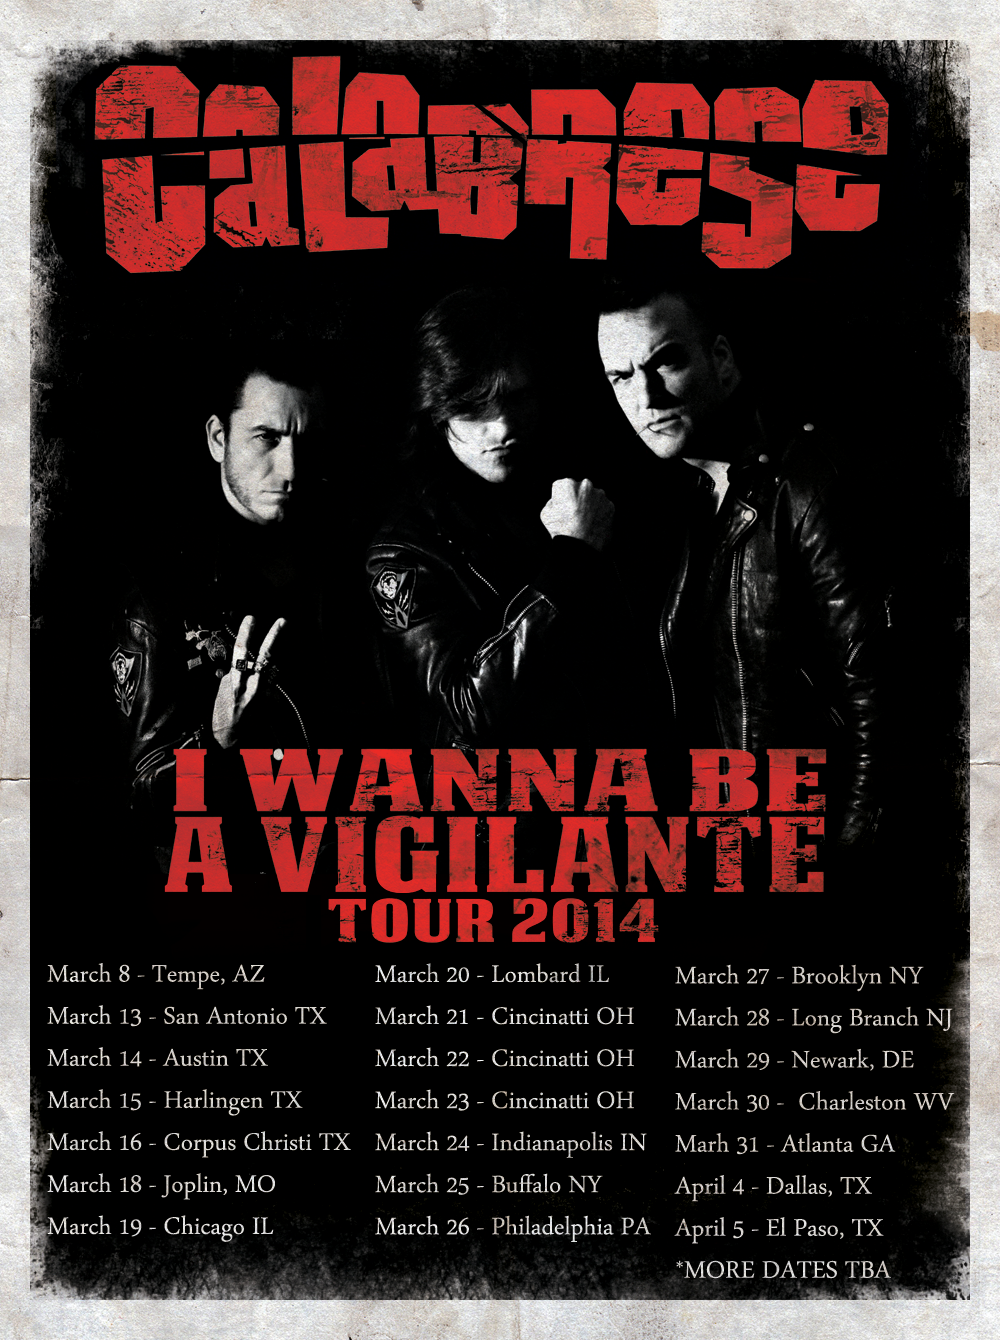 CALABRESE-I-Wanna-Be-A-Vigilante-Tour-2014-Poster-for-Web